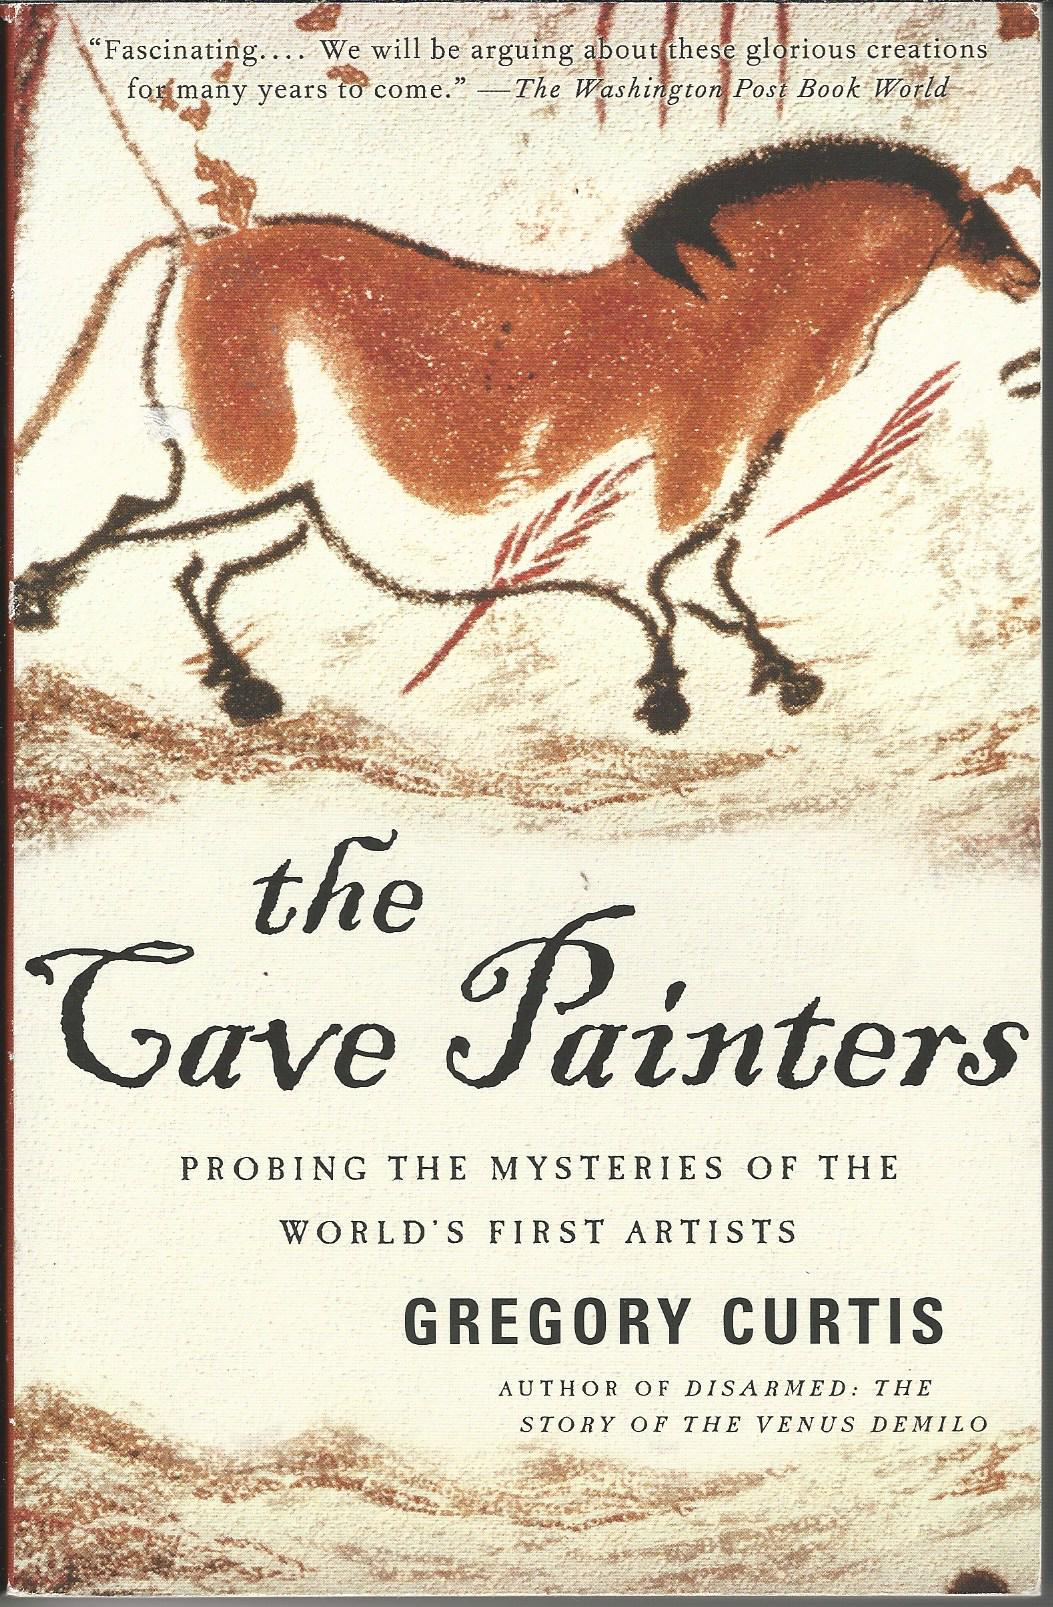 Image for The Cave Painters: Probing the Mysteries of the World's First Artists.